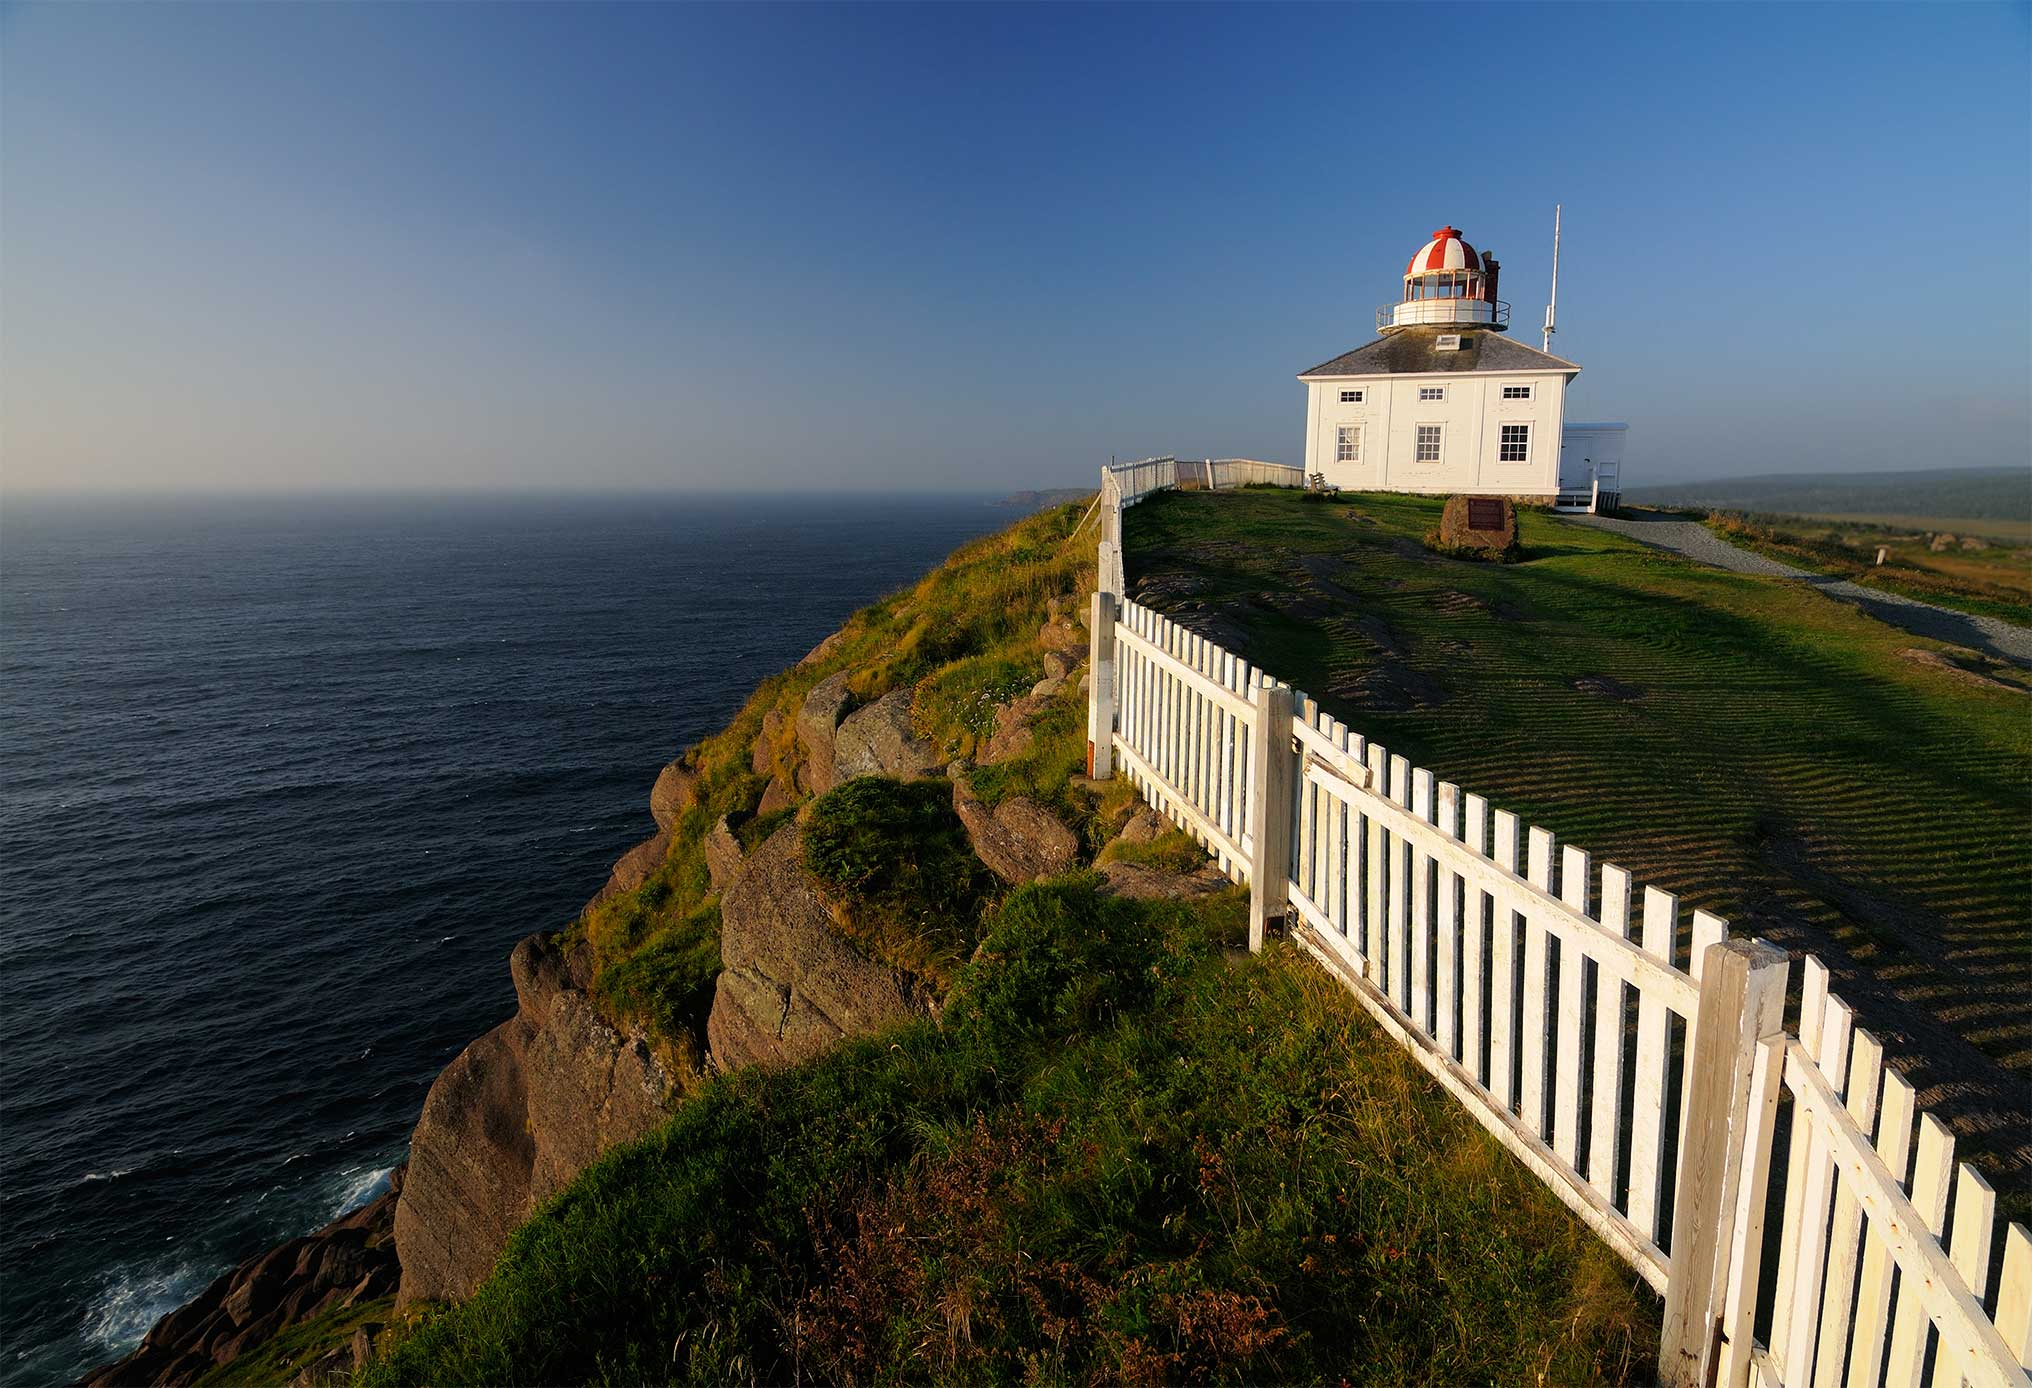 Cape Spear, National Historic Site of Canada. St John's, Newfoundland and Labrador. © Shutterstock